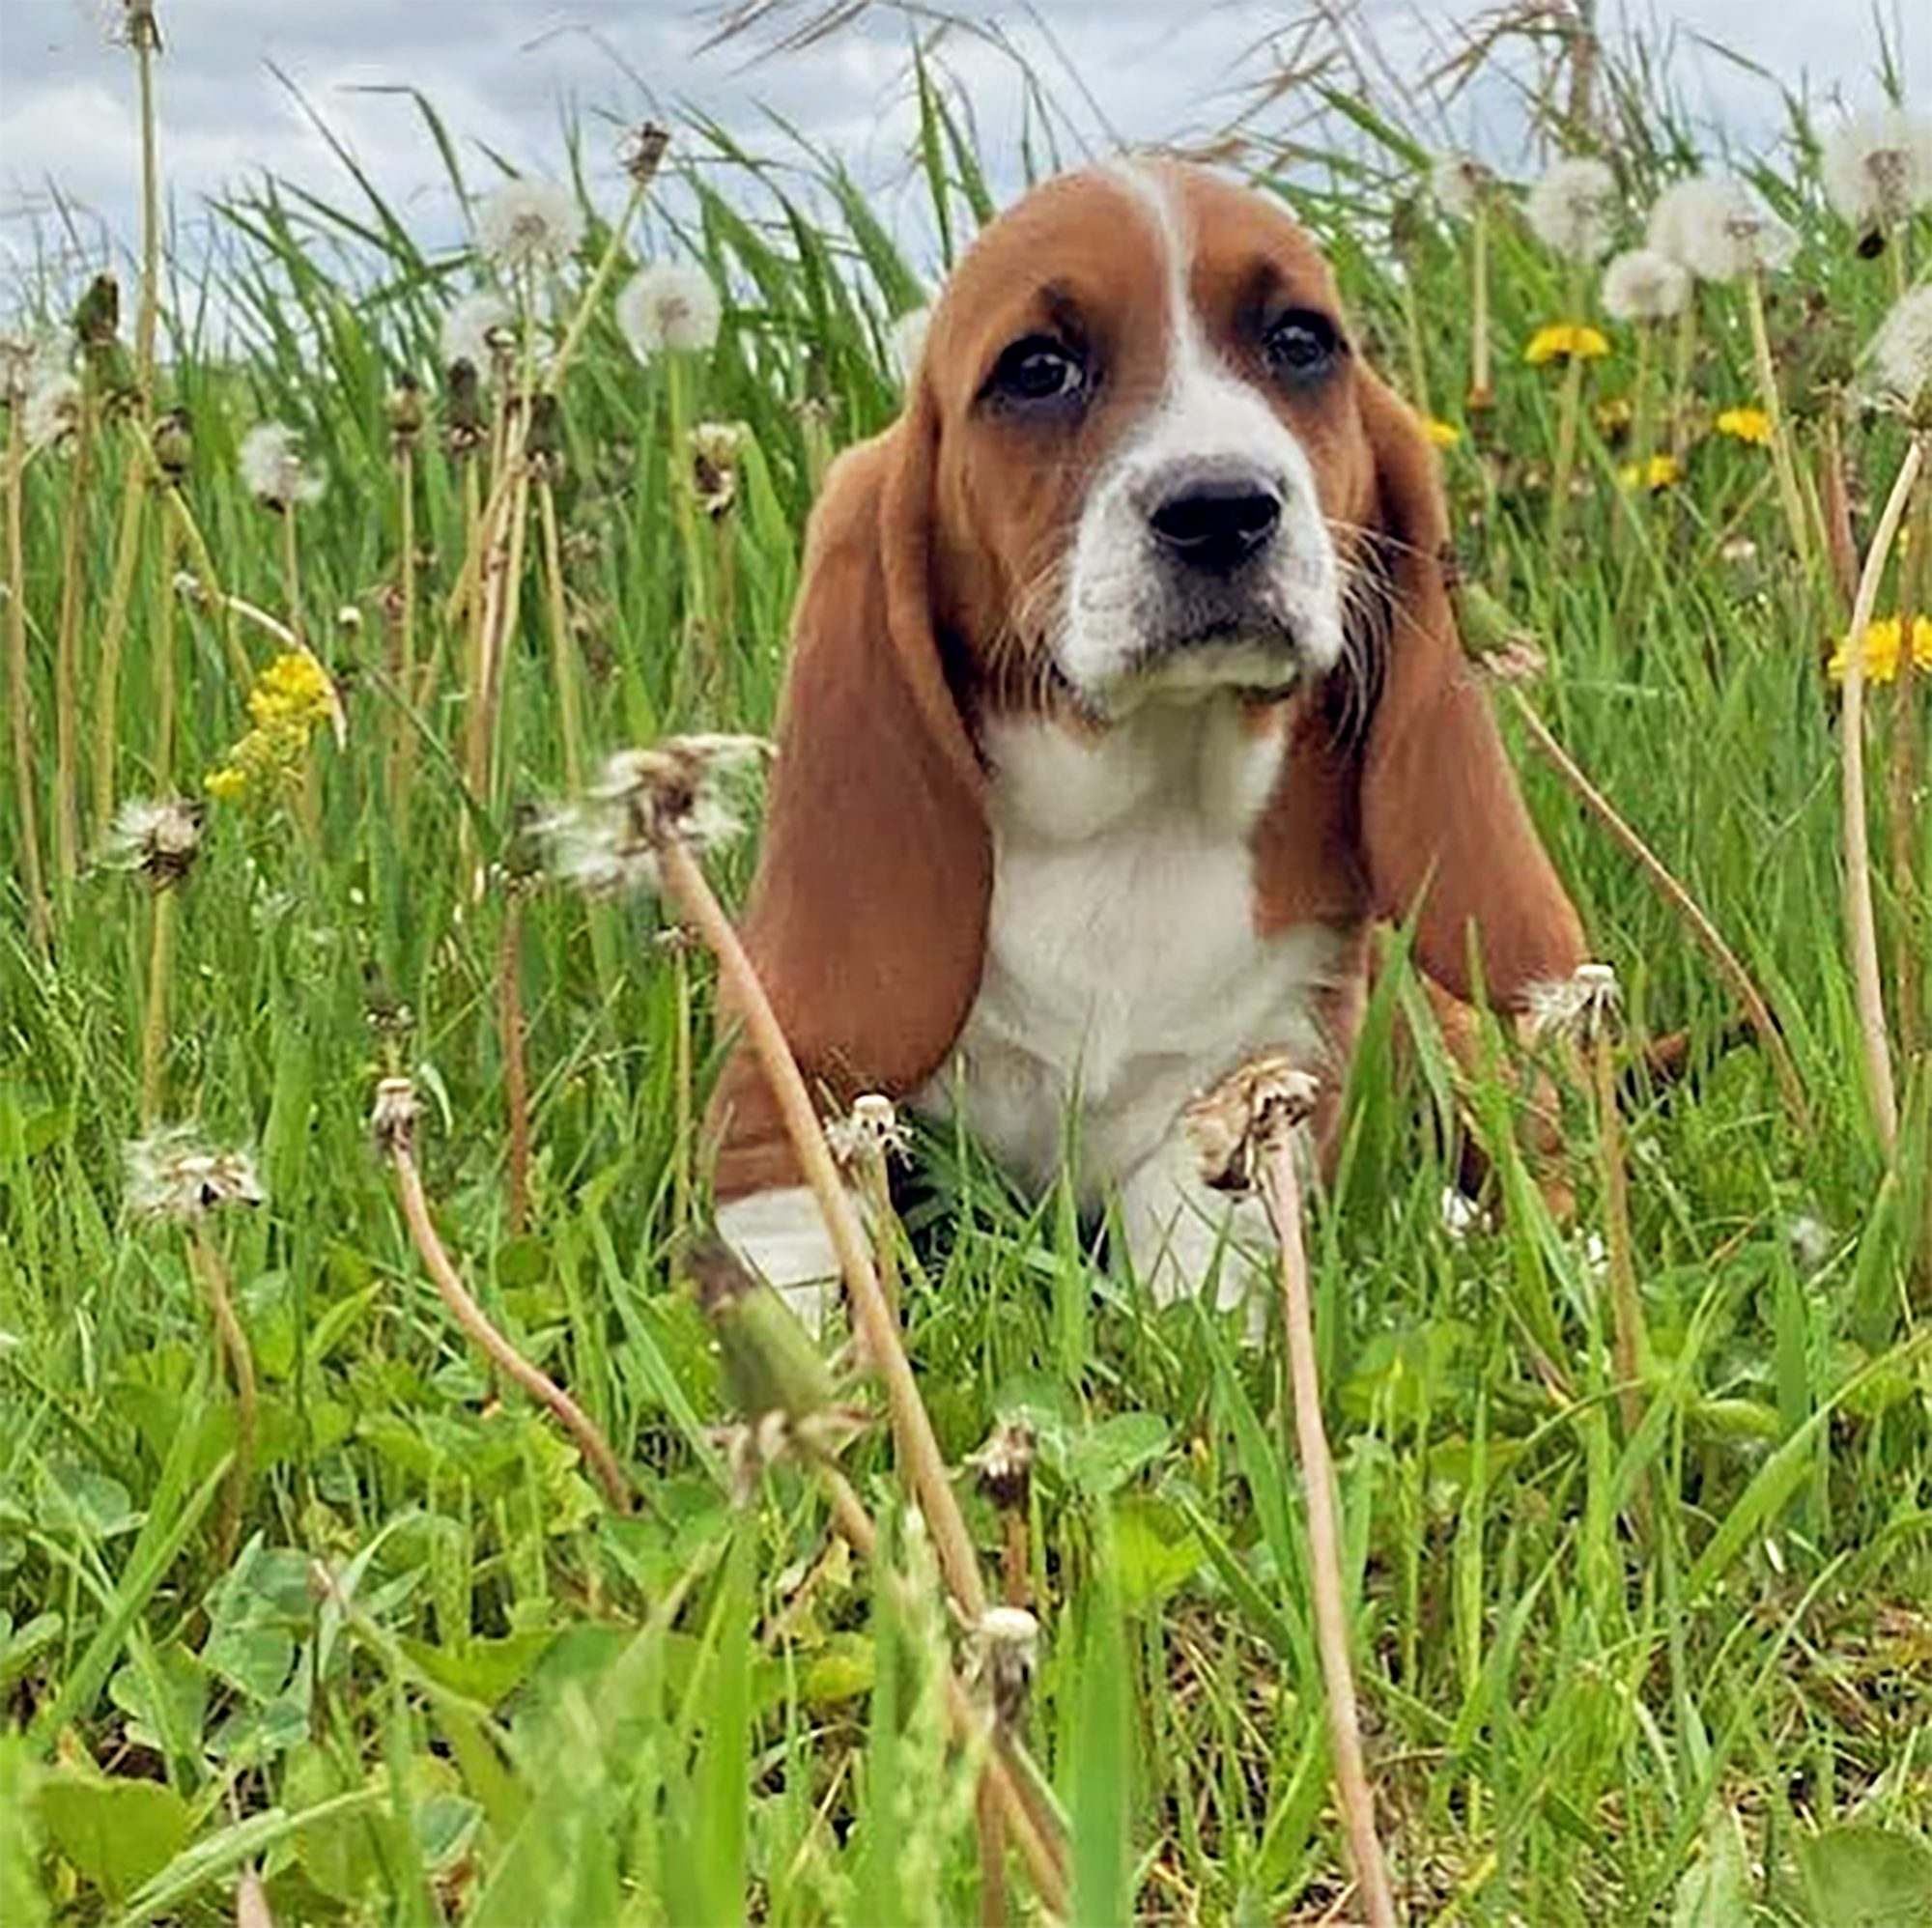 beagle basset hound mix with basset eyes and ears sitting in a field of dandelions